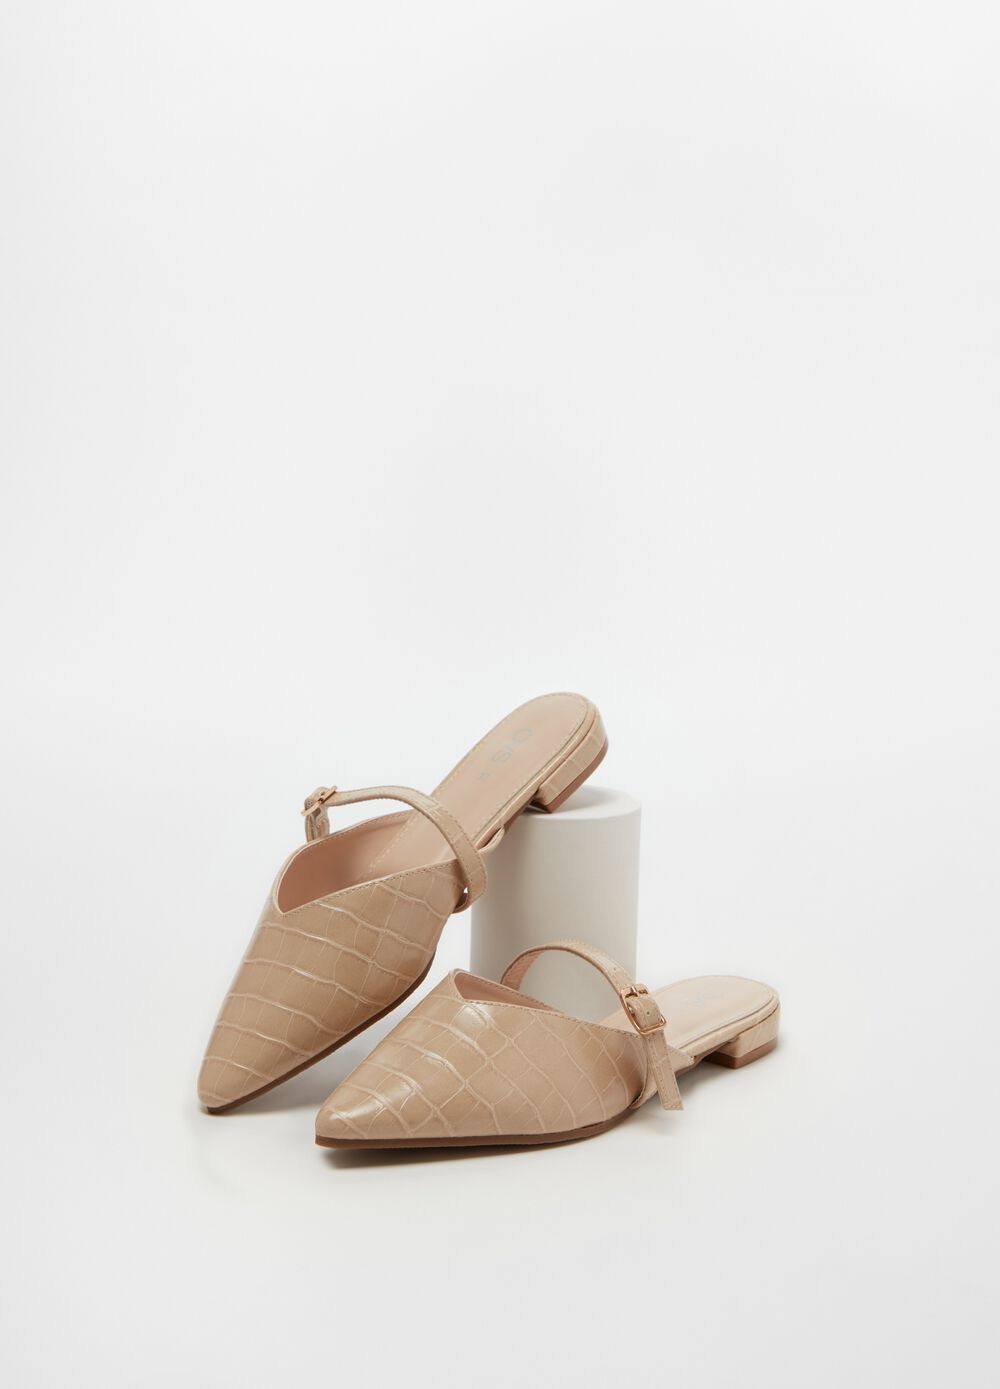 Pointed clogs with strap